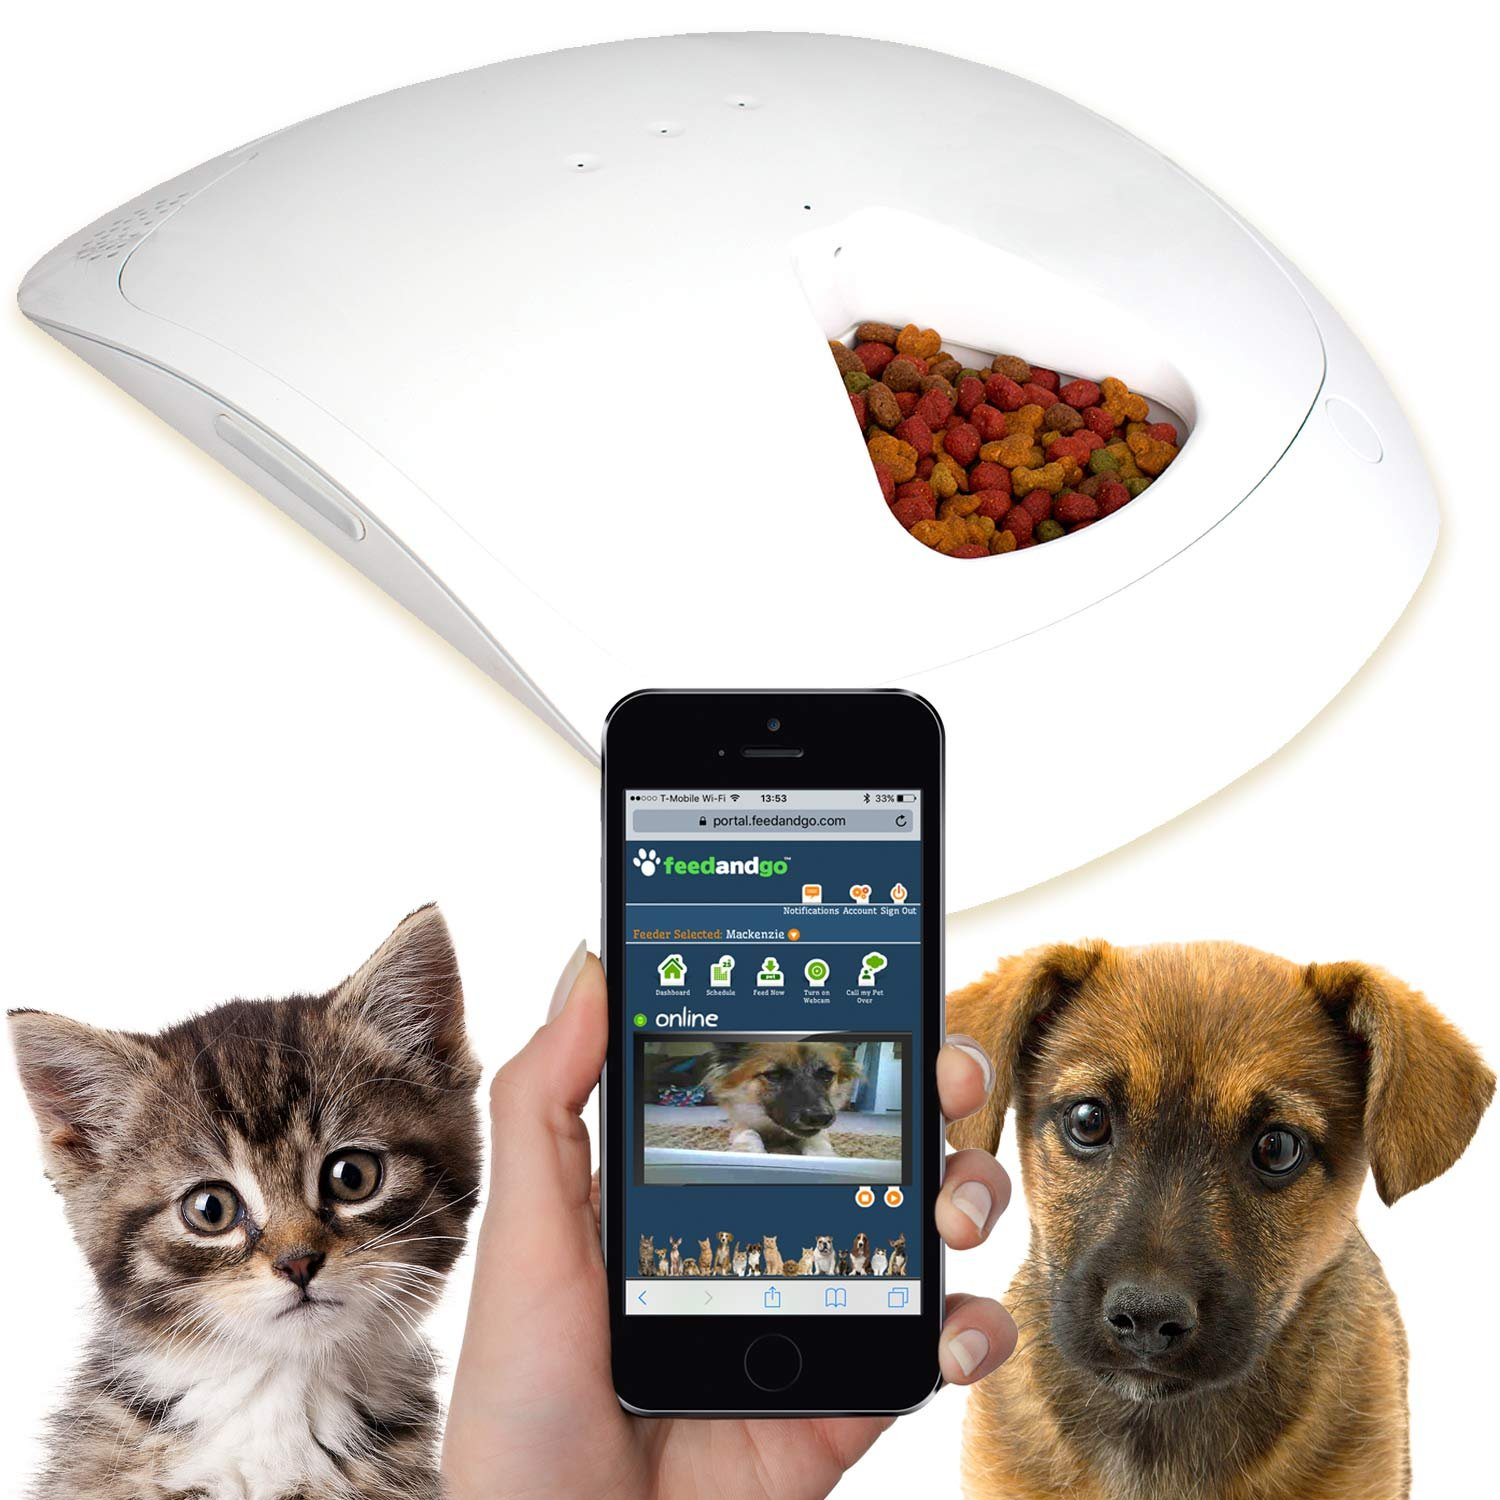 Feed and Go Smart Pet Feeder with Webcam & Wi-Fi